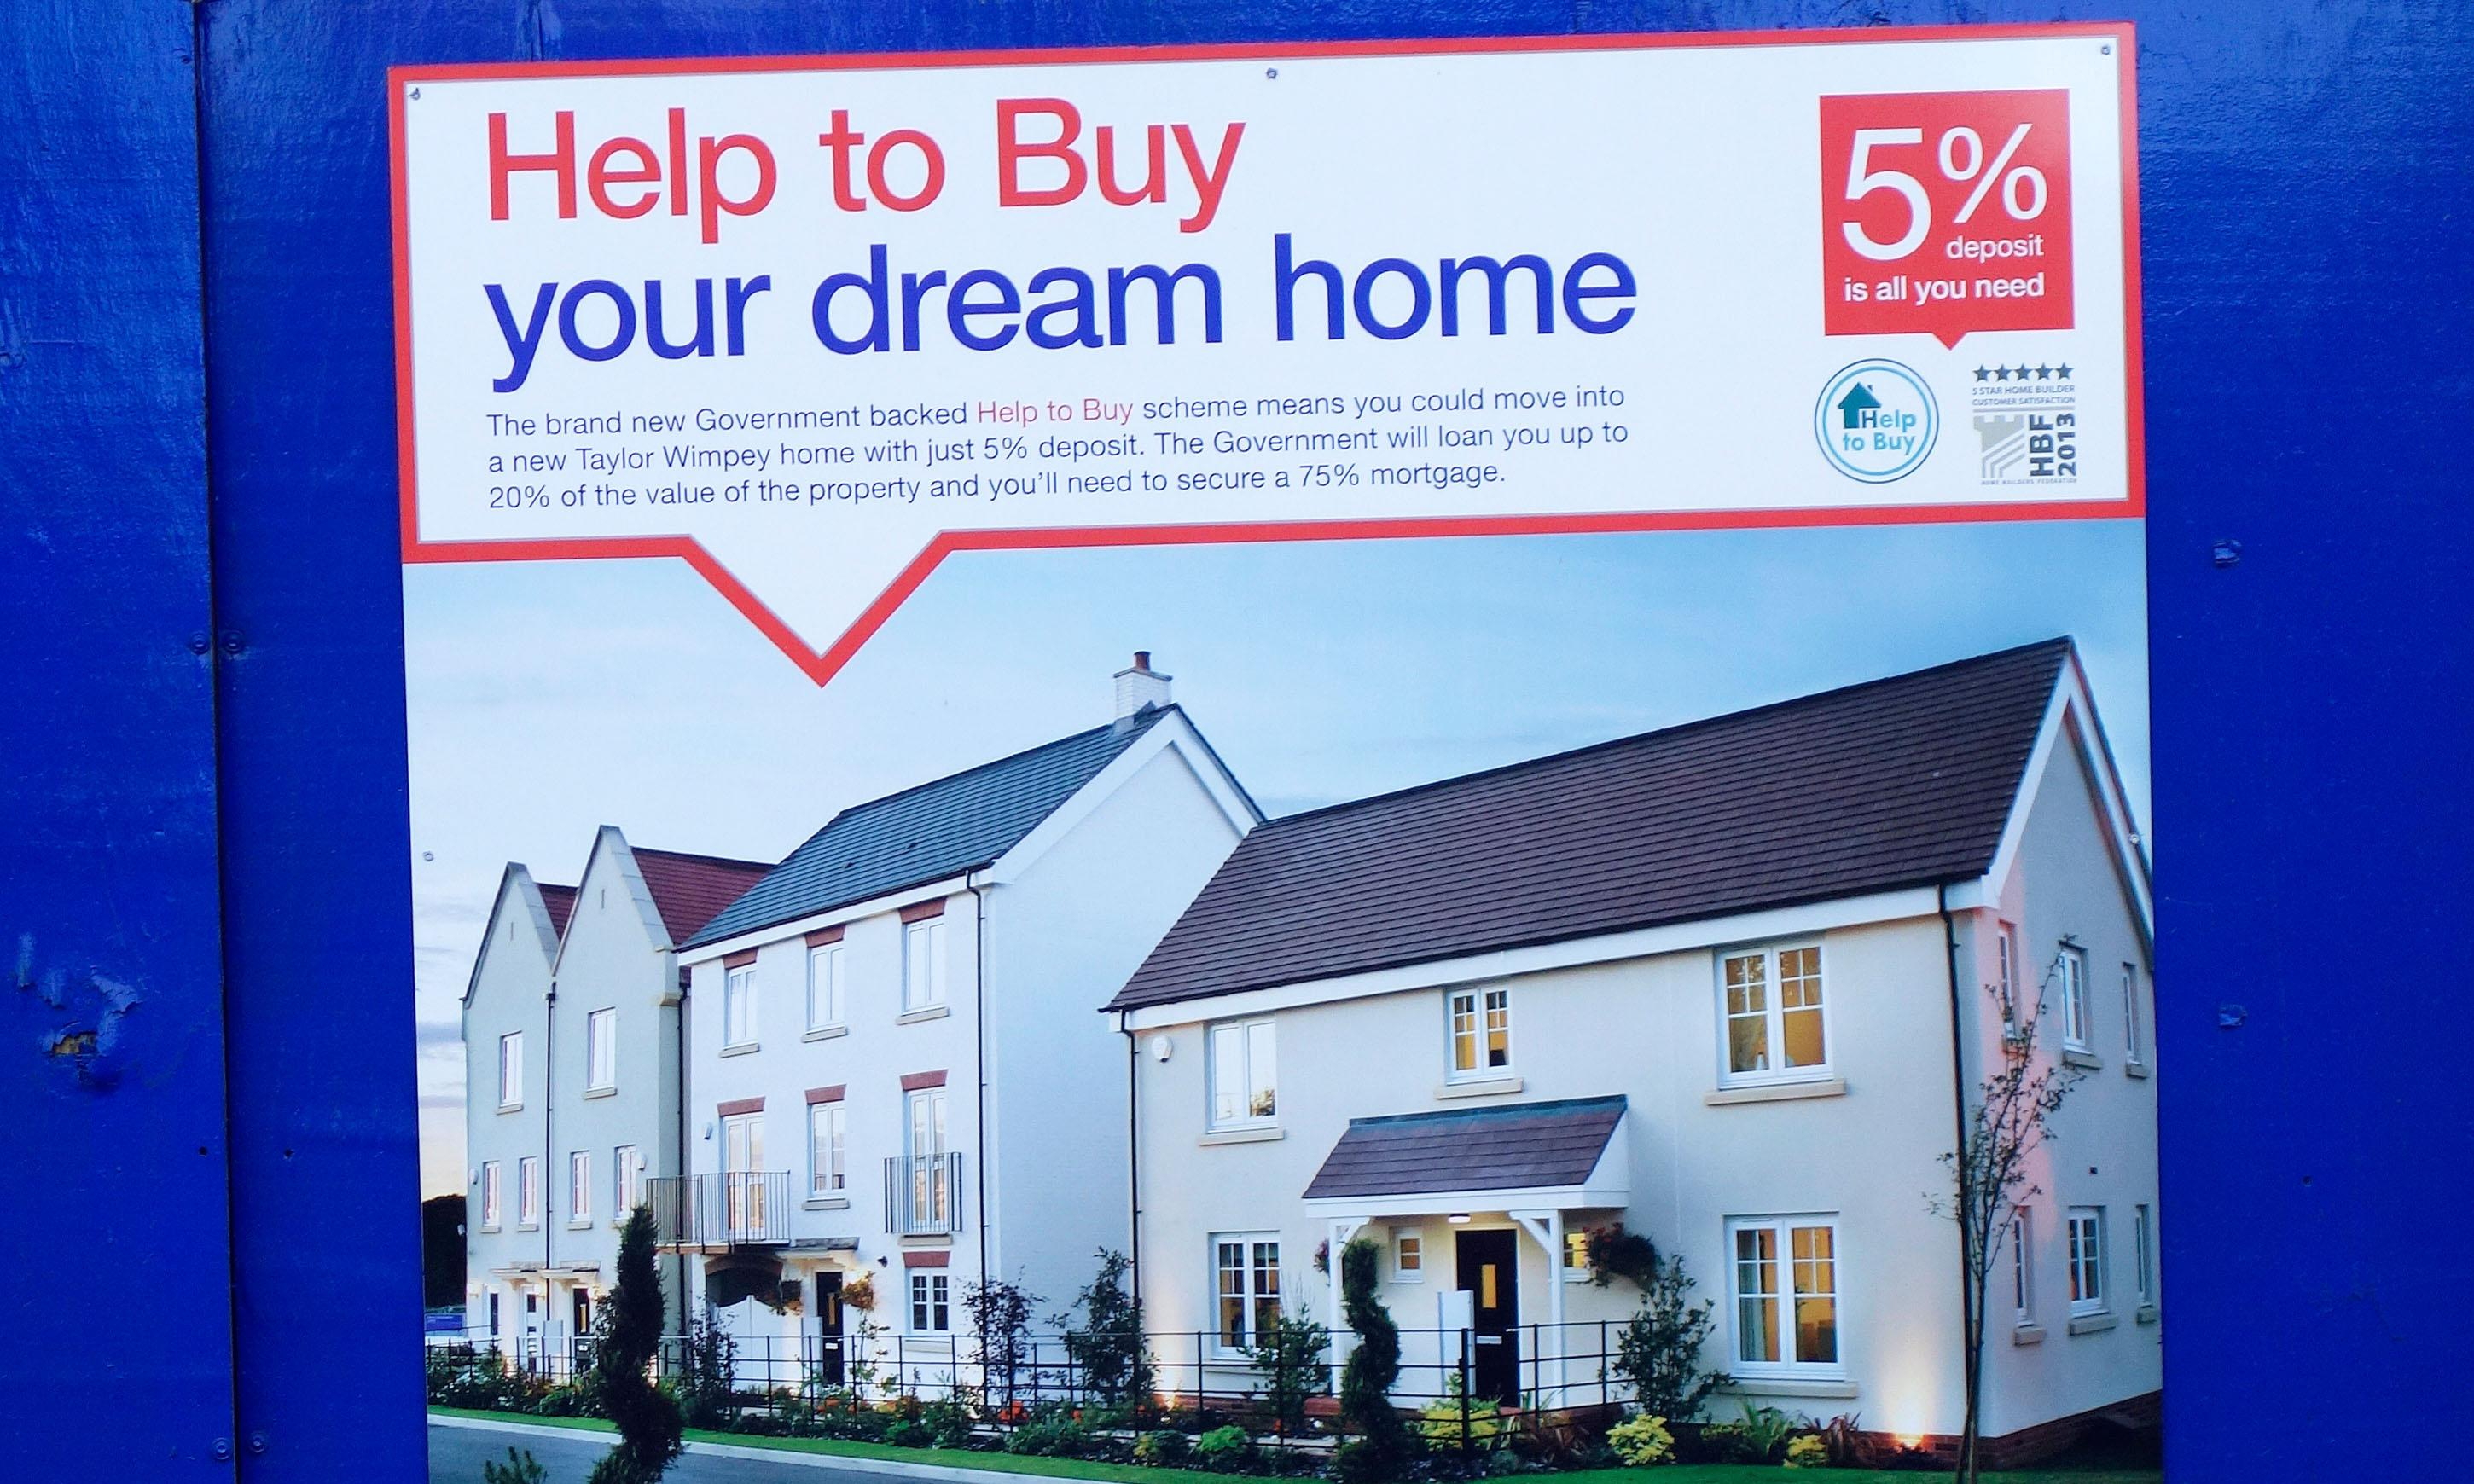 I'm a first-time buyer – do I earn enough to get a mortgage?